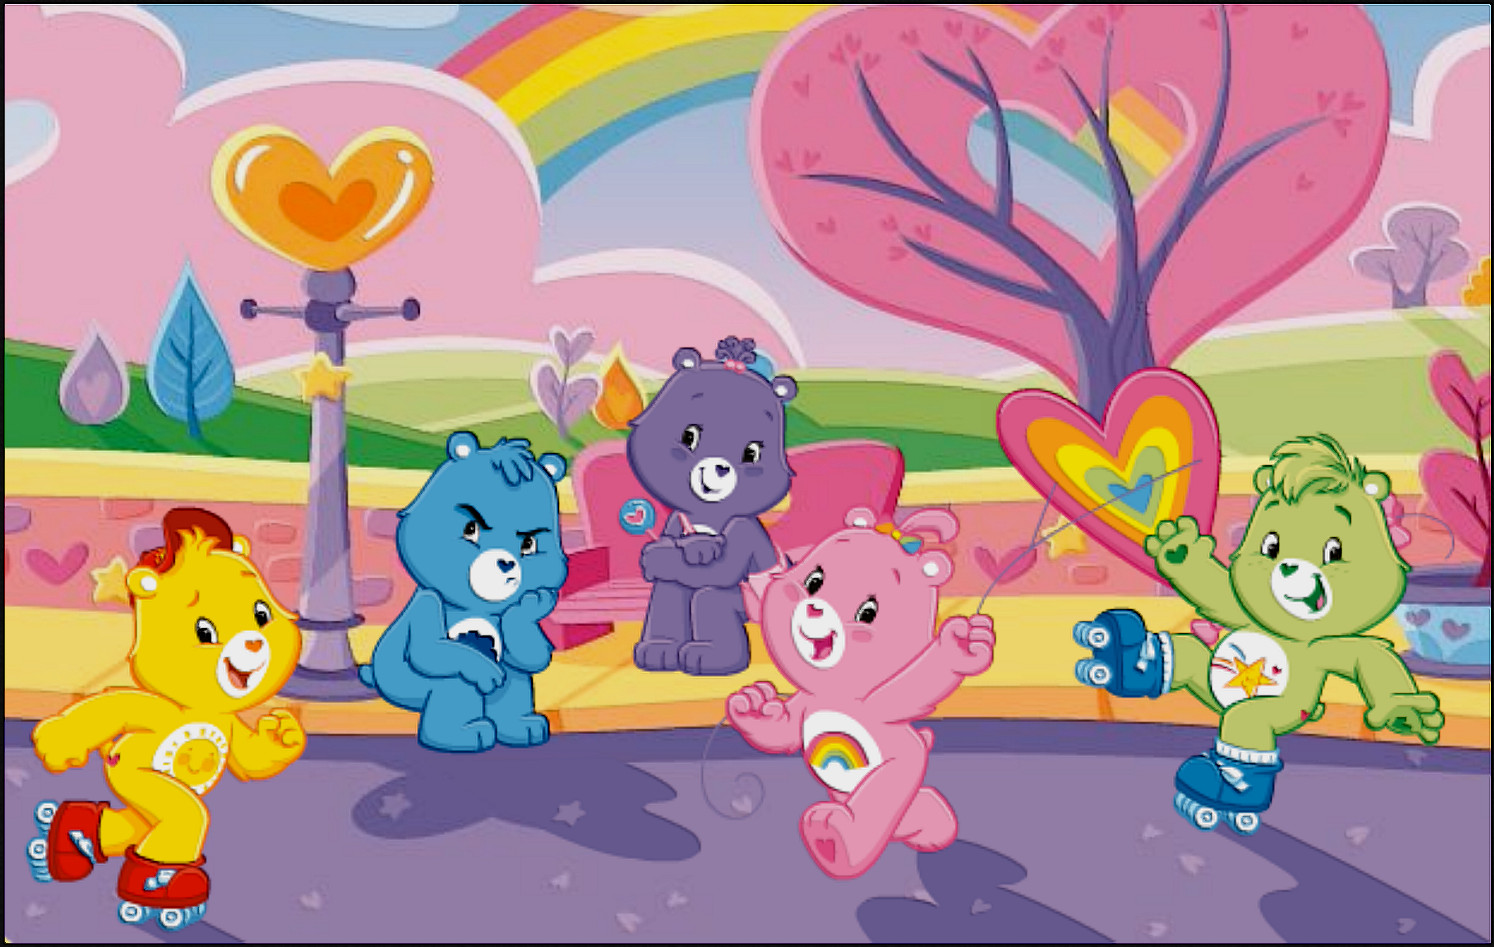 Download carebears wallpaper max quality by turbahull [1494x947